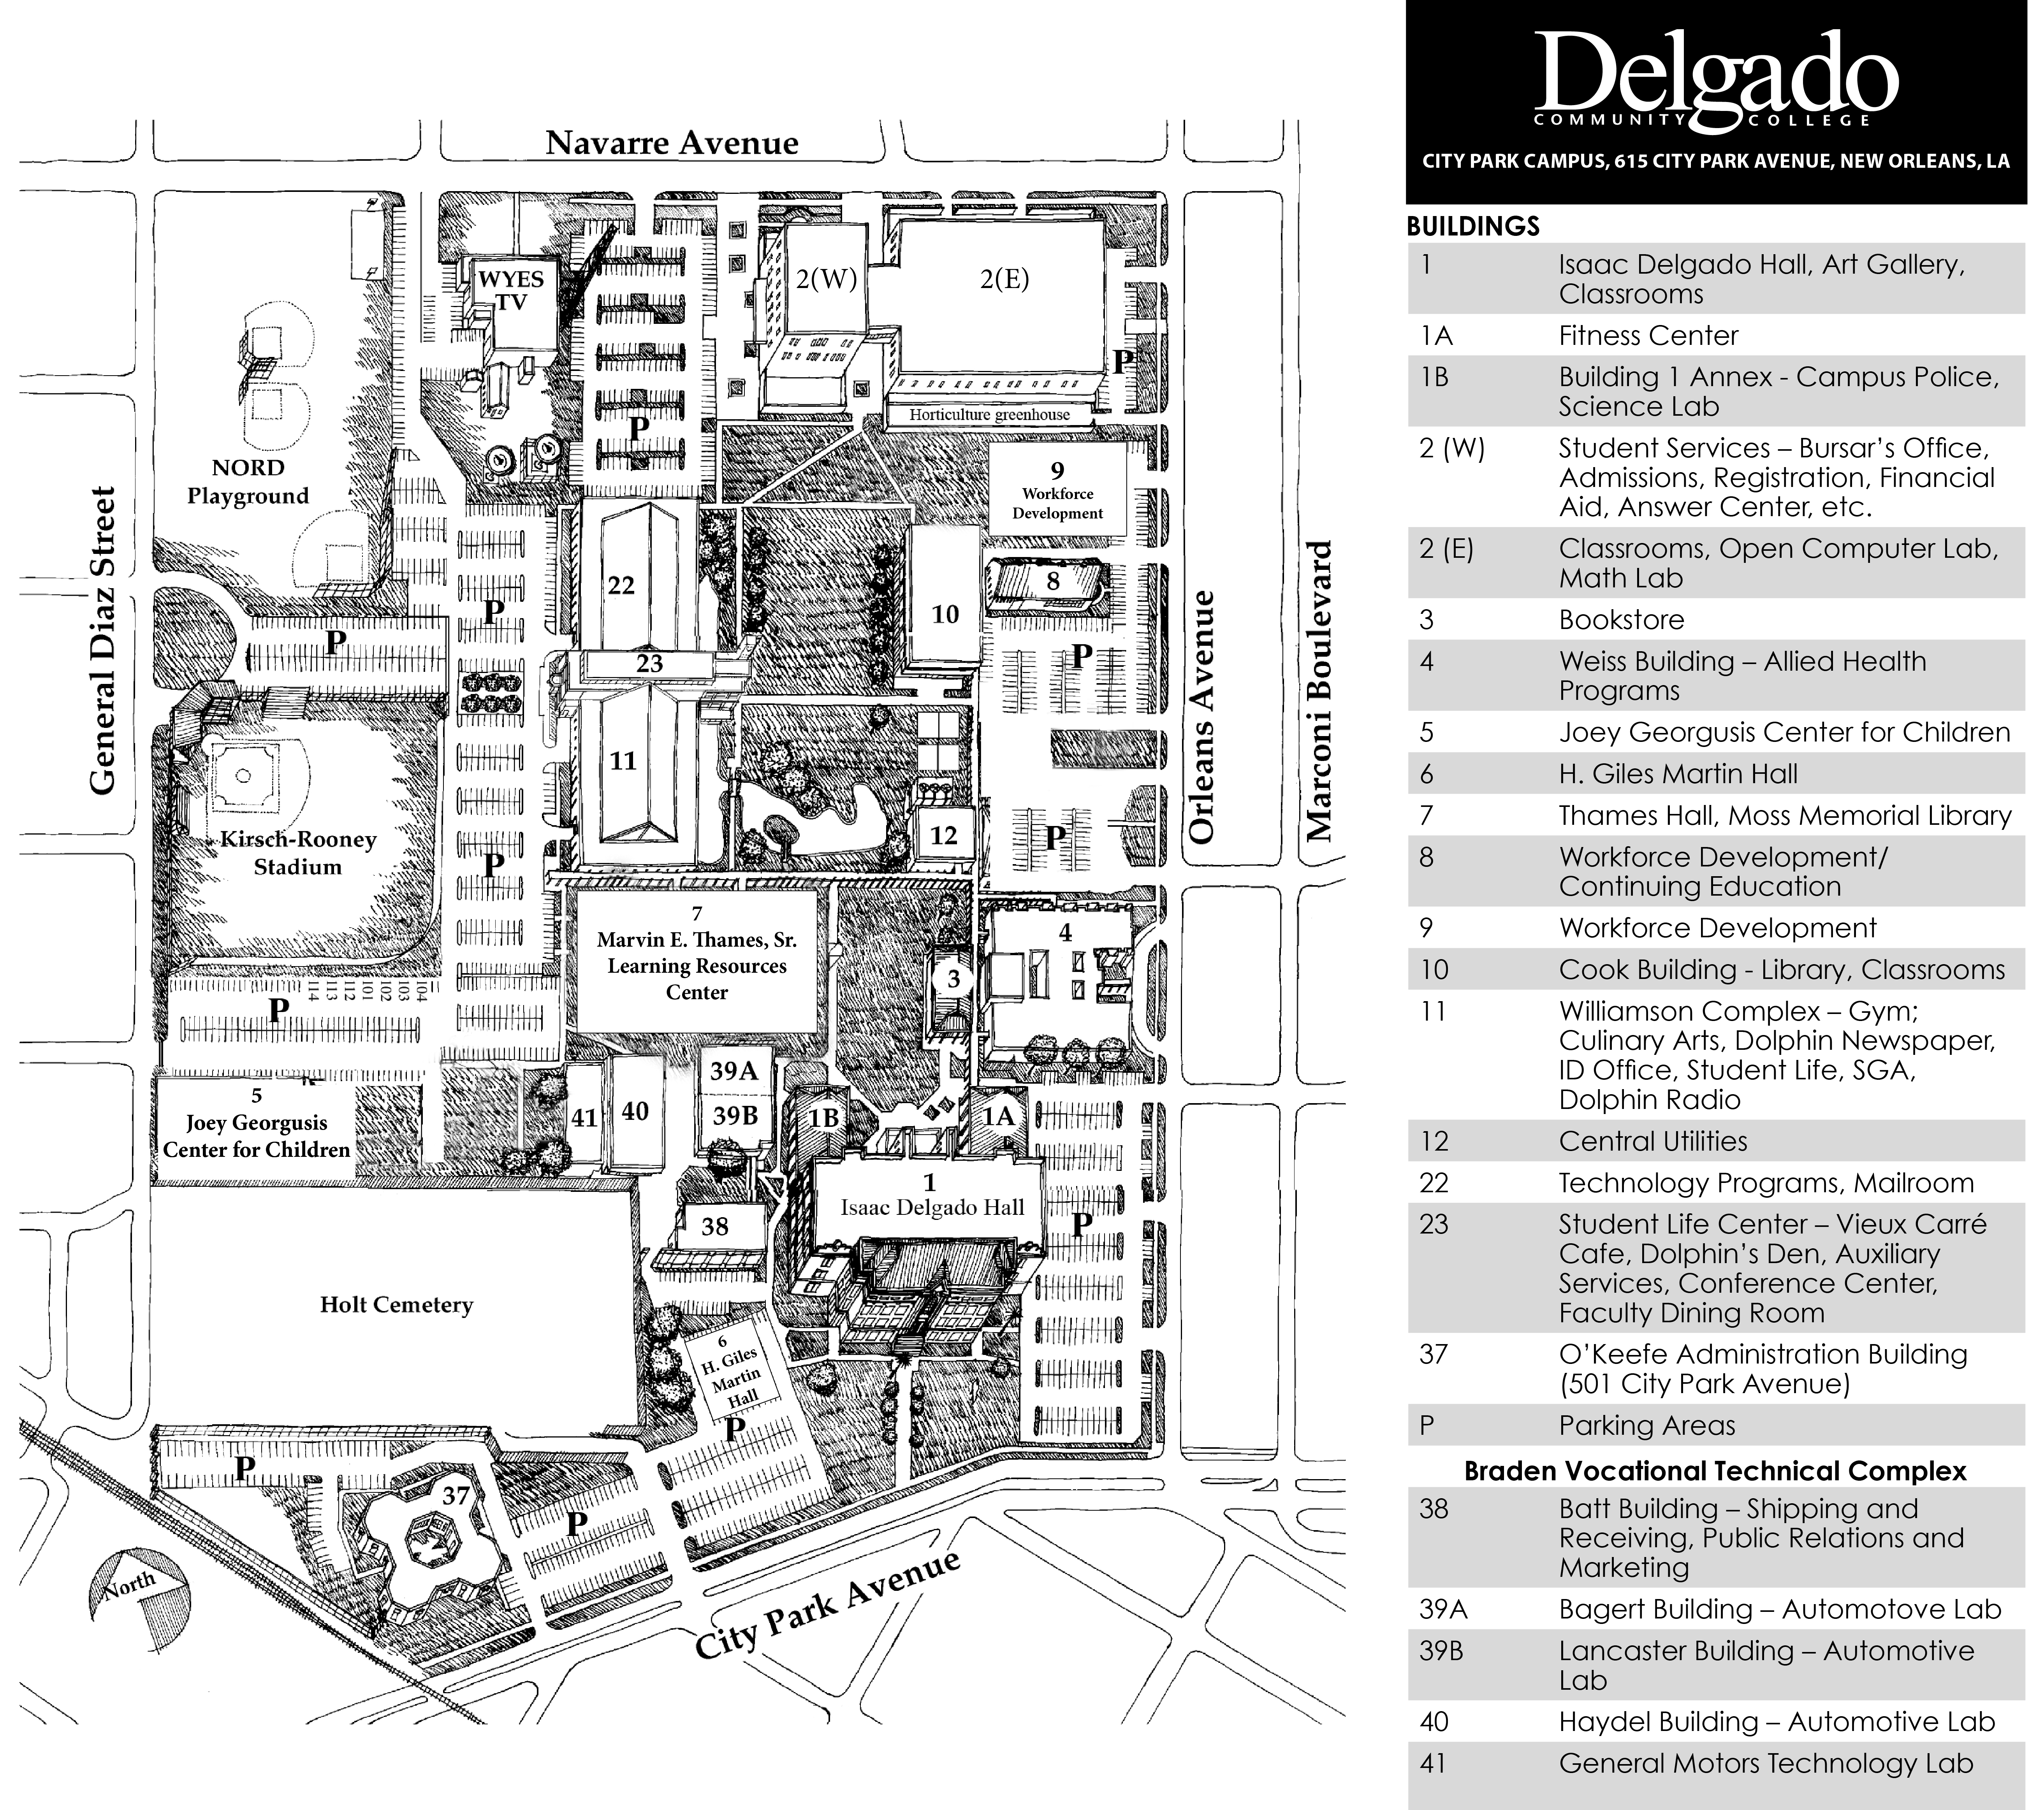 Delgado City Park Campus Map   Park Imghd.Co